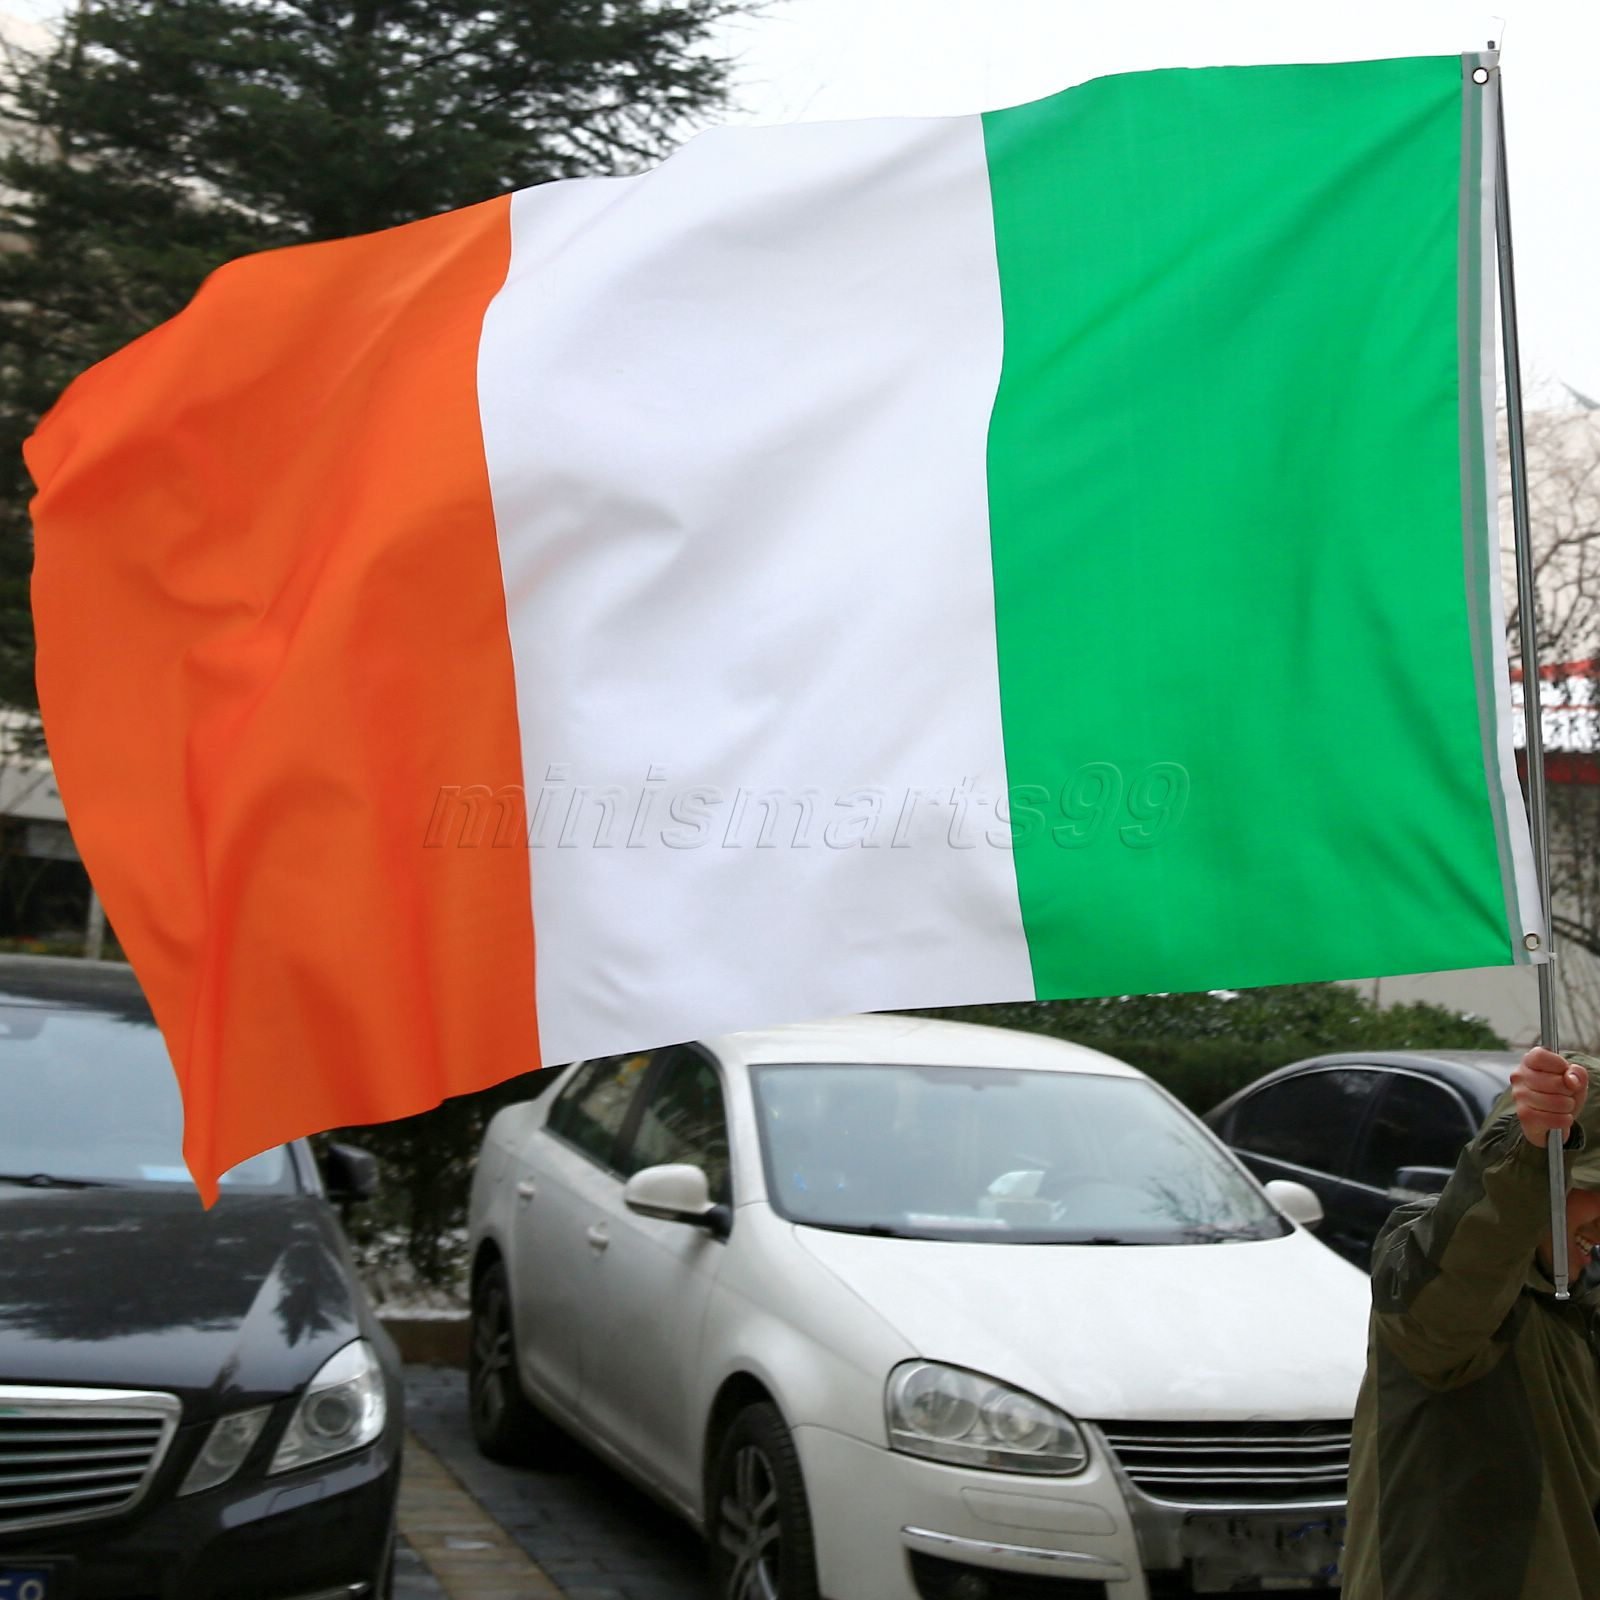 High Quality 3f x 5ft Ireland National <font><b>Flags</b></font> Polyester Irish <font><b>Flag</b></font> <font><b>90x150cm</b></font> Indoor Outdoor Banners For Celebration Big <font><b>Flag</b></font> image